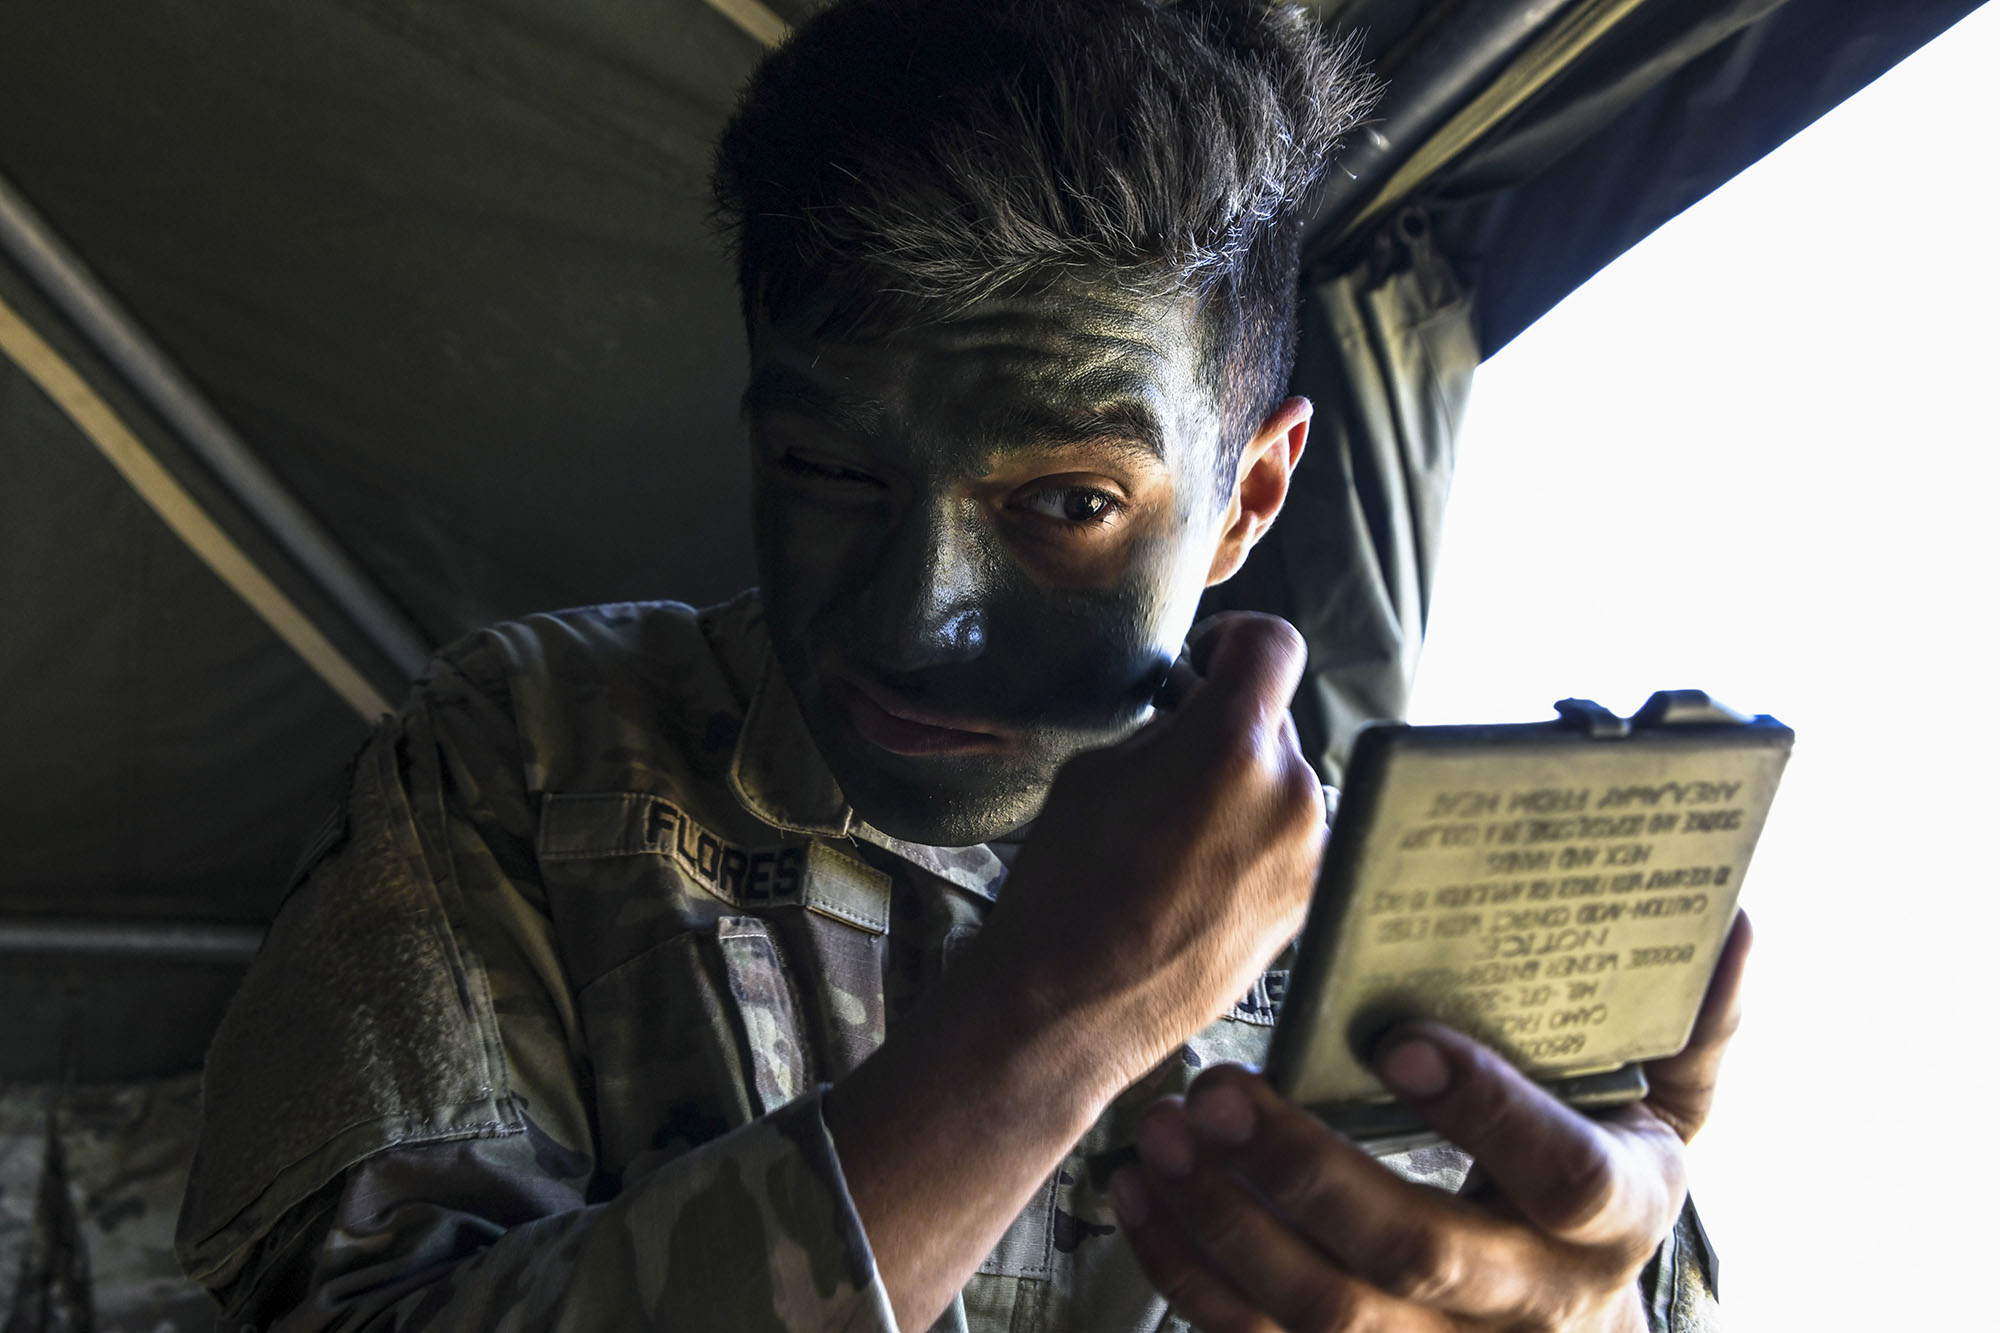 Army Spc. Christian Flores applies face paint prior to mission during the U.S. Army Europe European Best Warrior Competition at U.S. Army Garrison Hohenfels Training Area, Germany, July 29, 2020. (Spc. Austin Riel/Army)